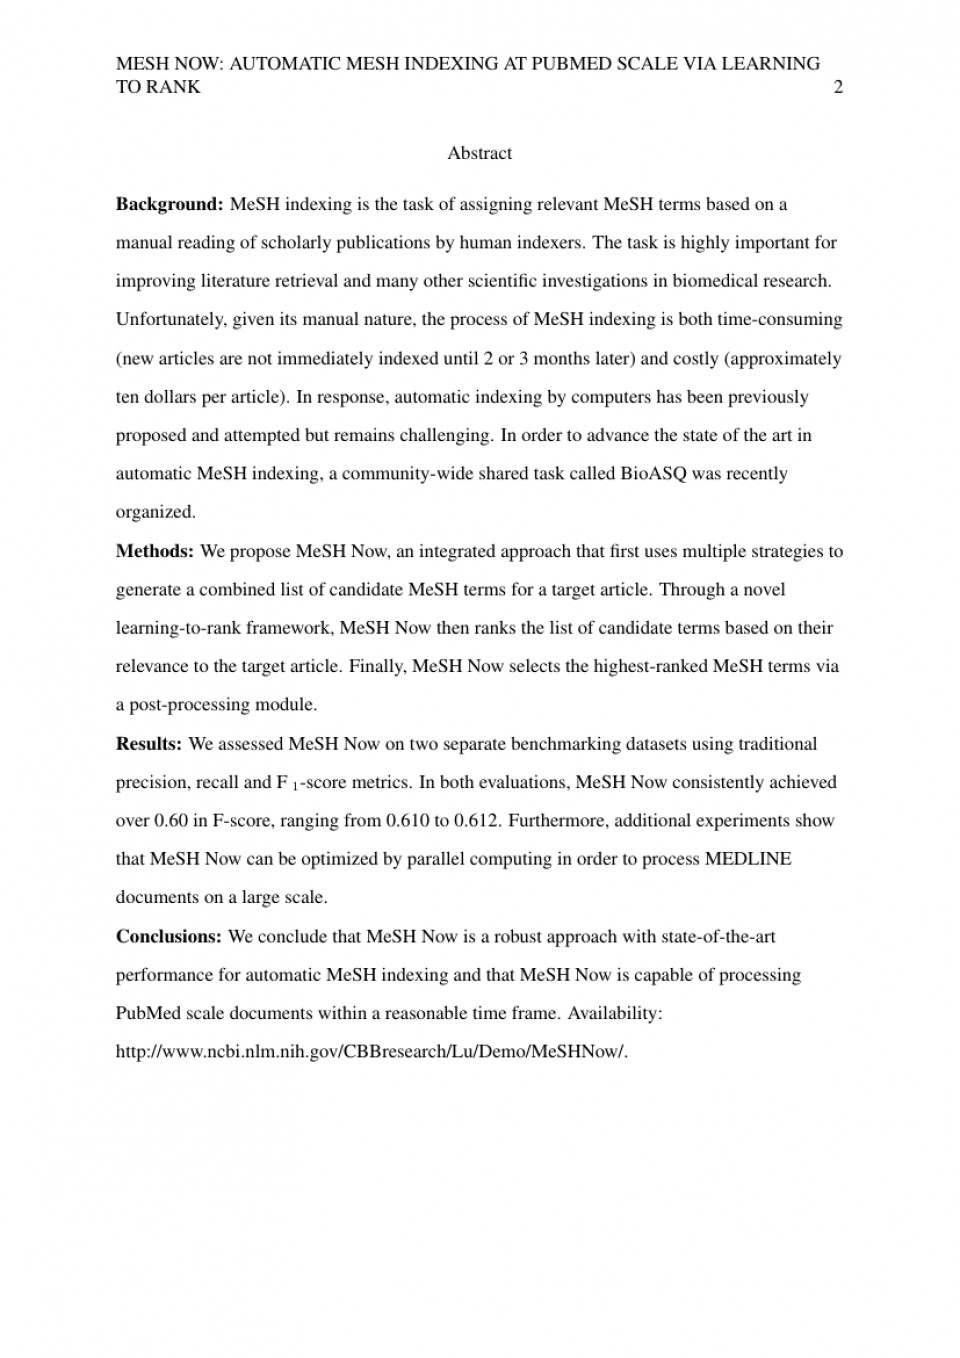 008 Research Paper On Economics Output Fantastic Indian Topics Development In India 960